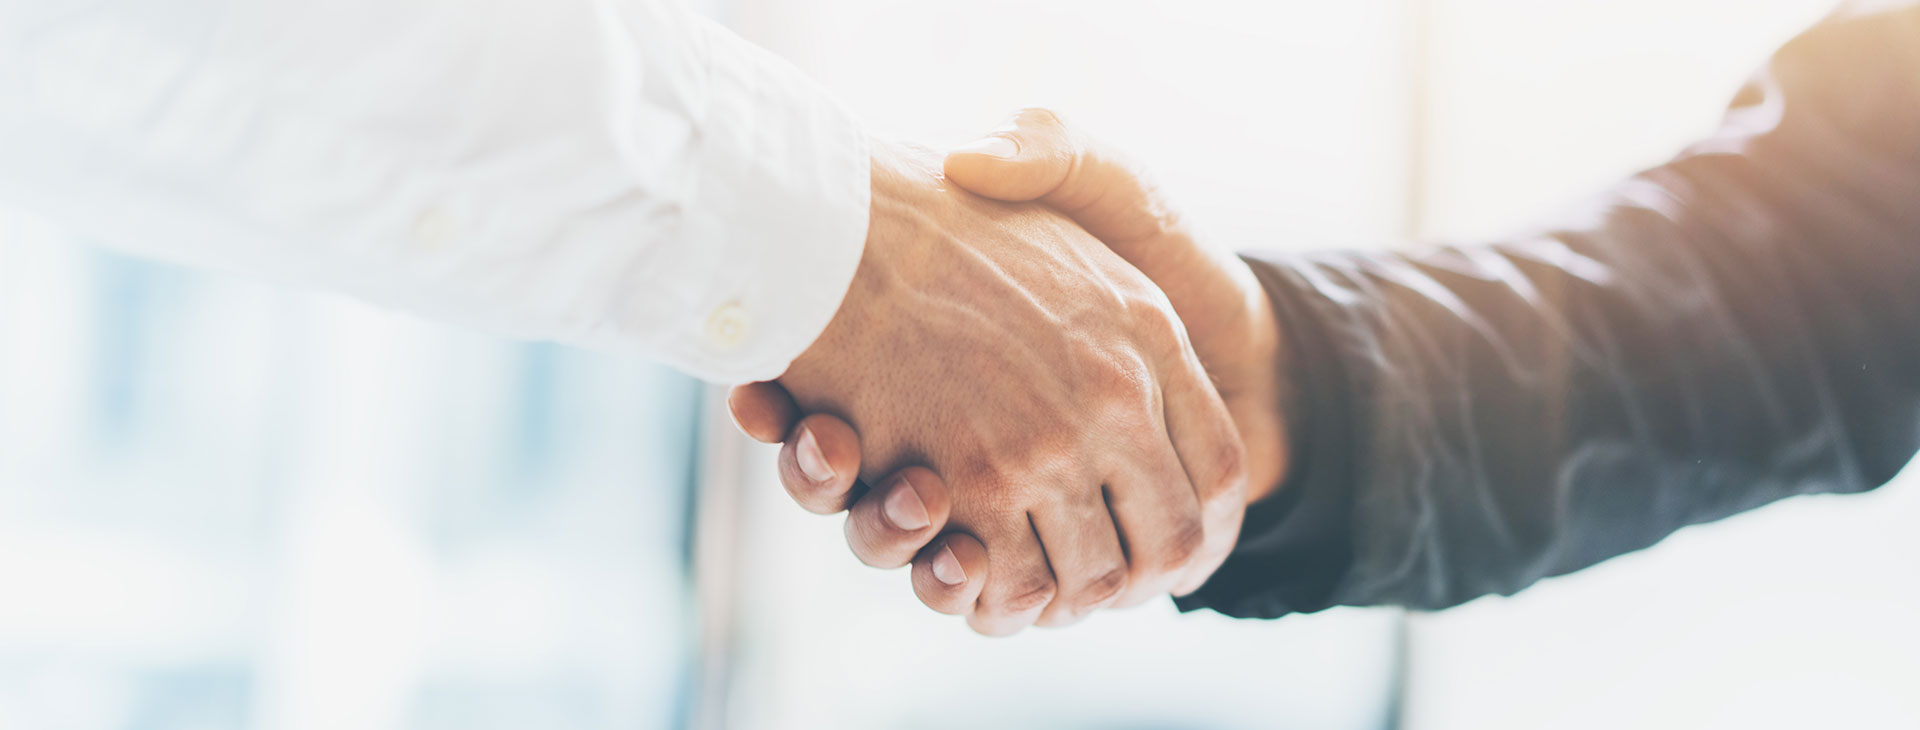 Business handshake for buying a franchise